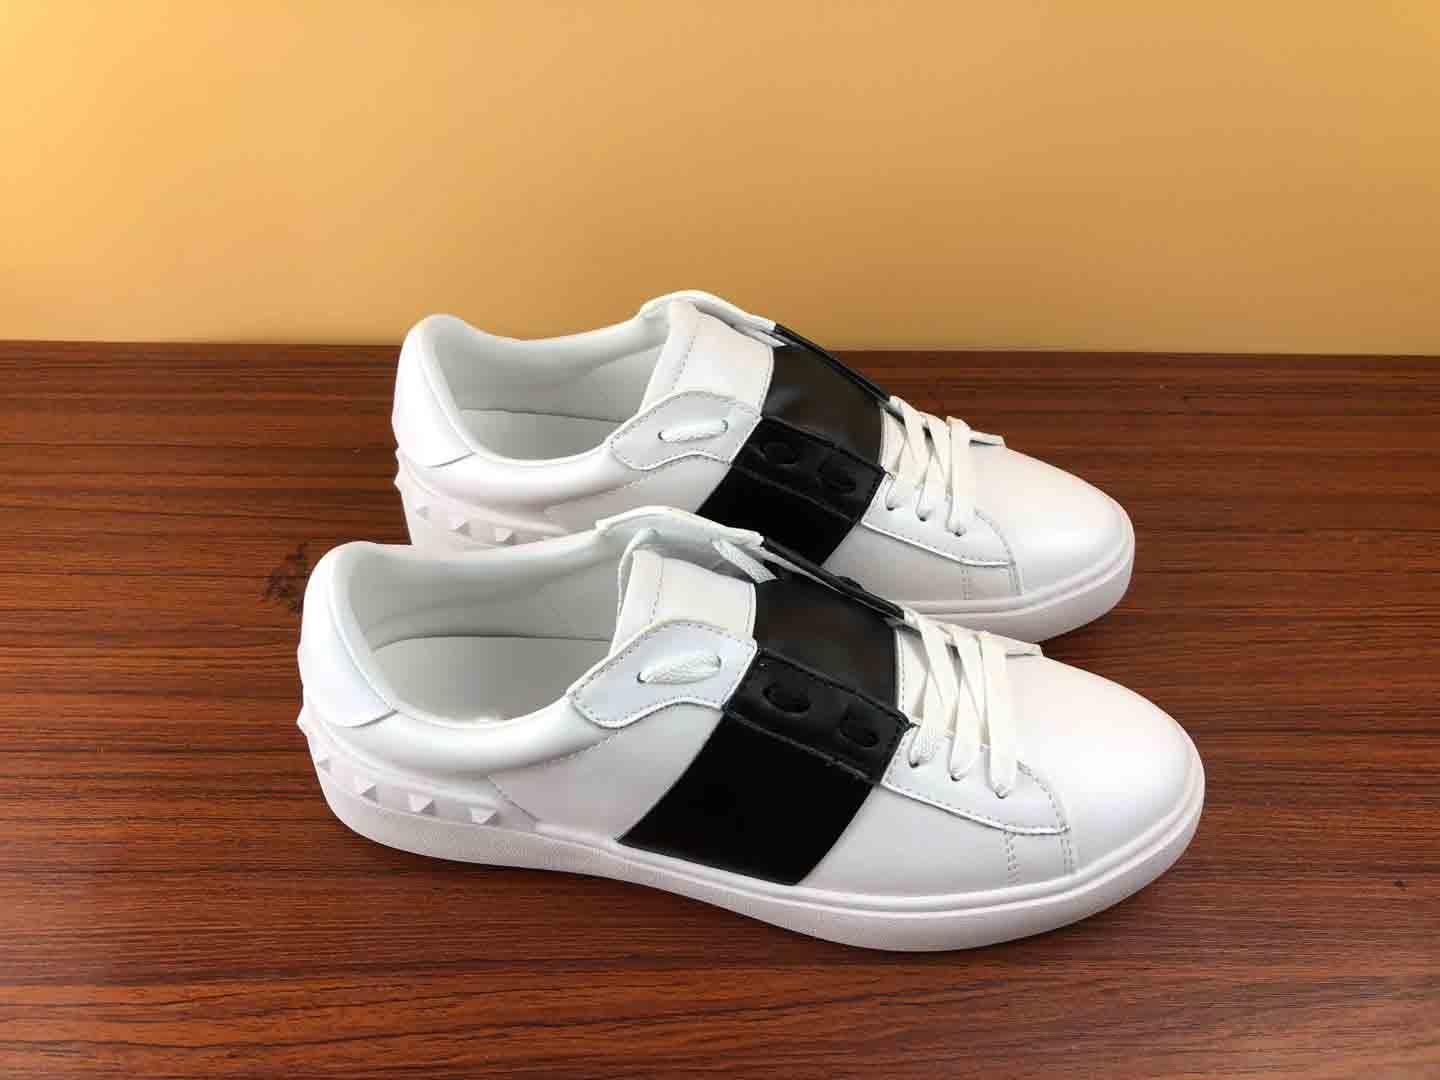 Fashion Mens Women designer Shoes white Lace Up Genuine Leather open luxury Casual shoes Flat sport designer sneaker with box for saleZ07